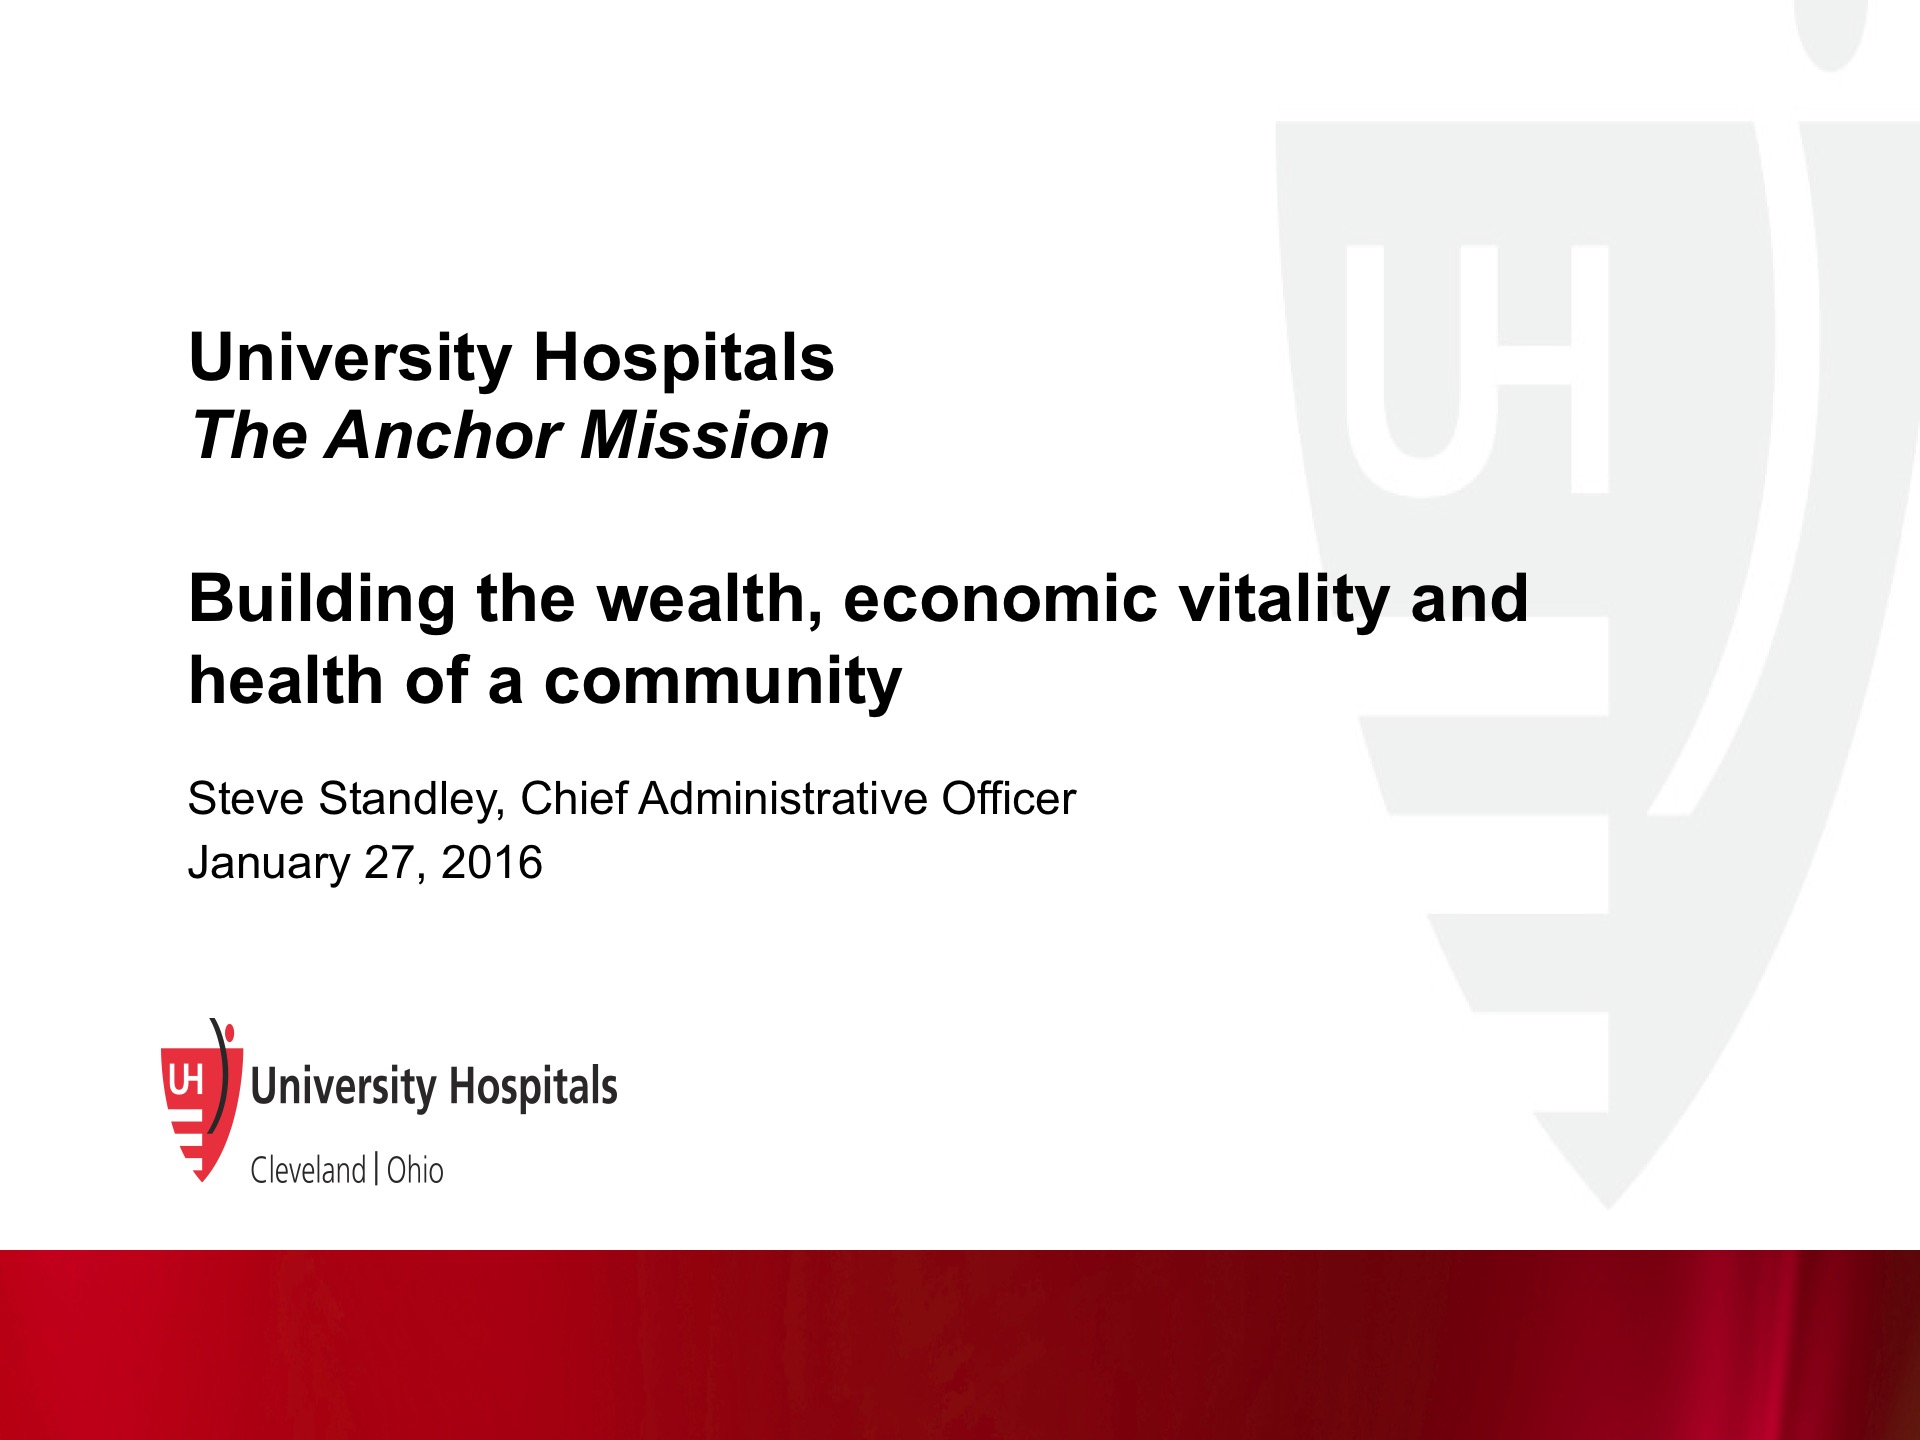 Steven Standley | University Hospitals: The Anchor Mission